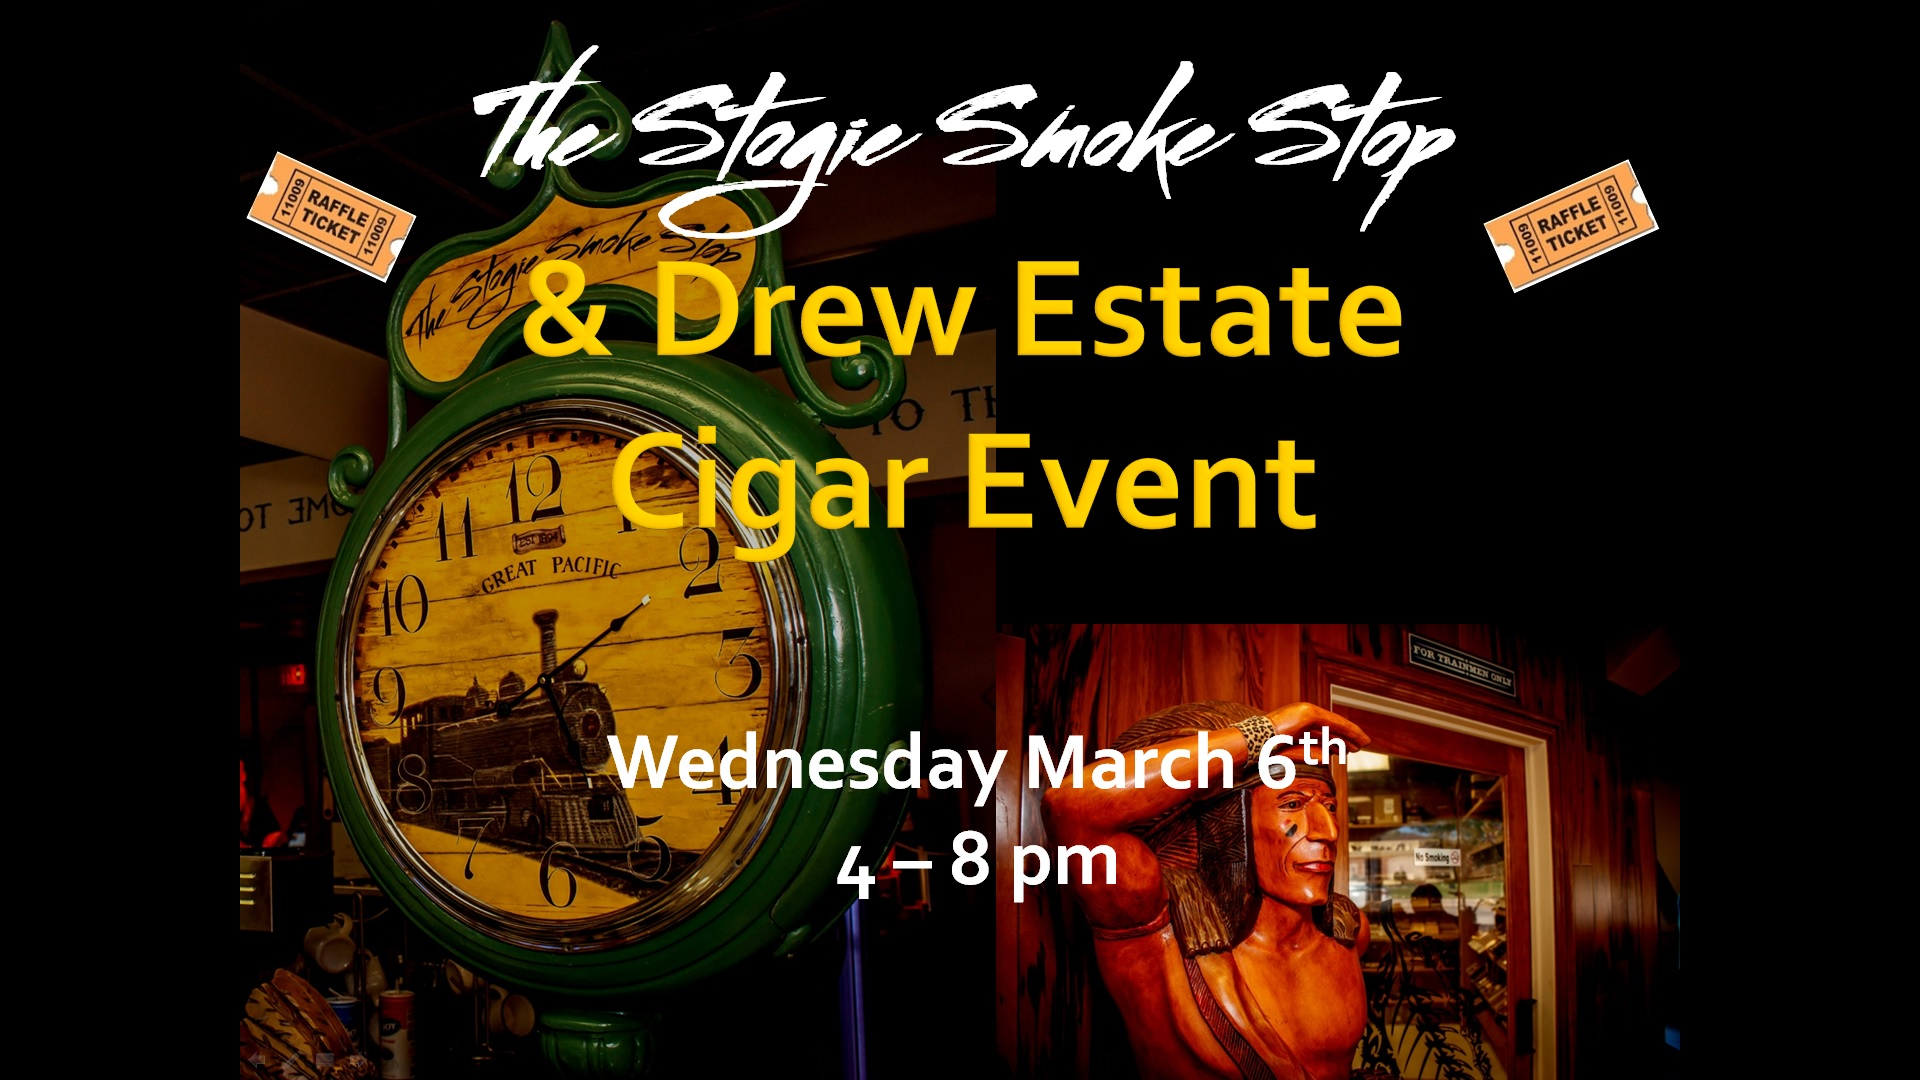 Drew Estate Cigar Event Wed. March 6th 4 - 9 pm